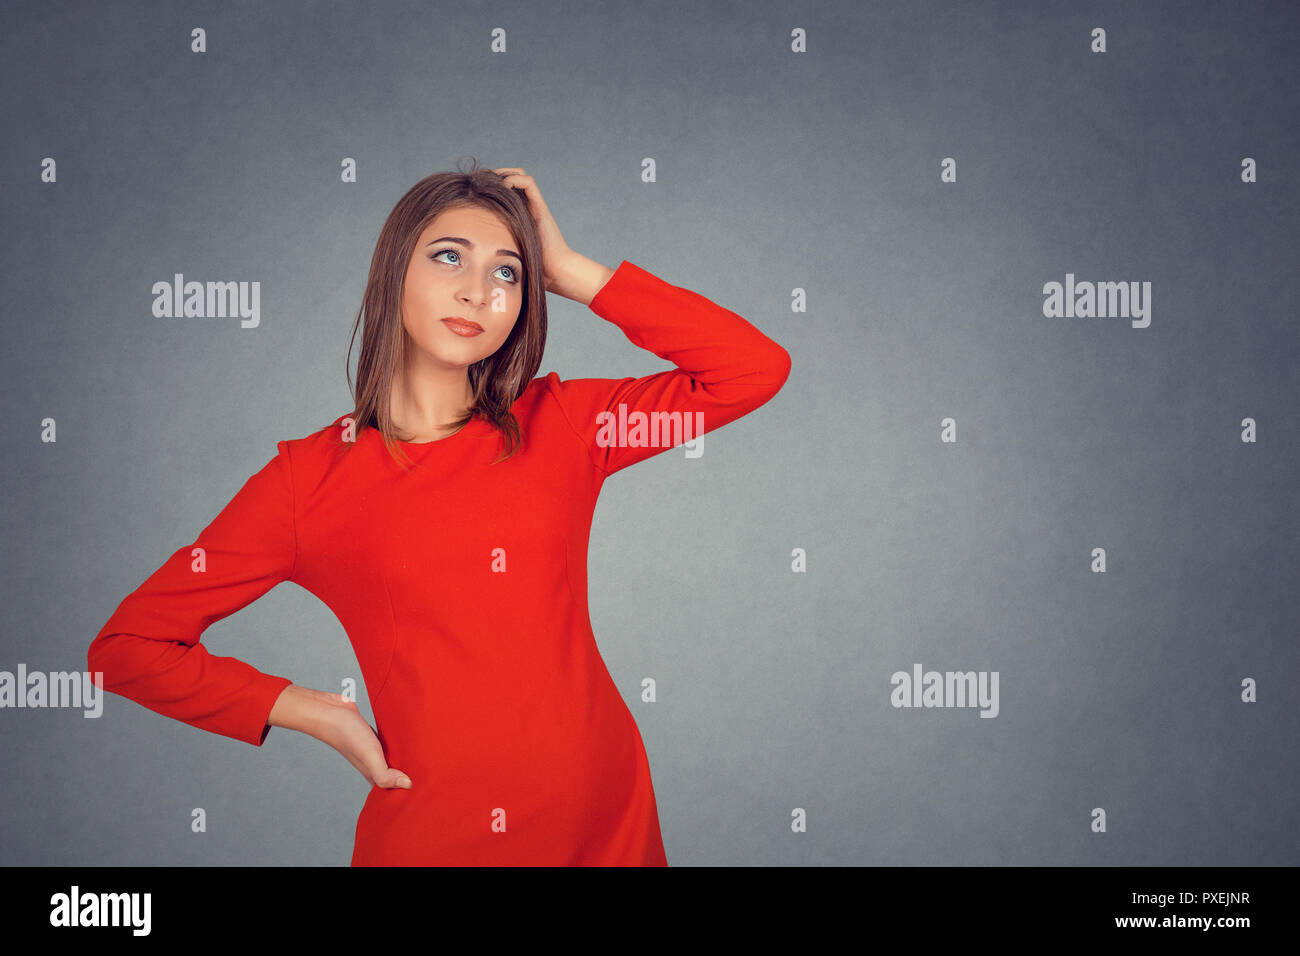 woman scratching head, thinking - Stock Image